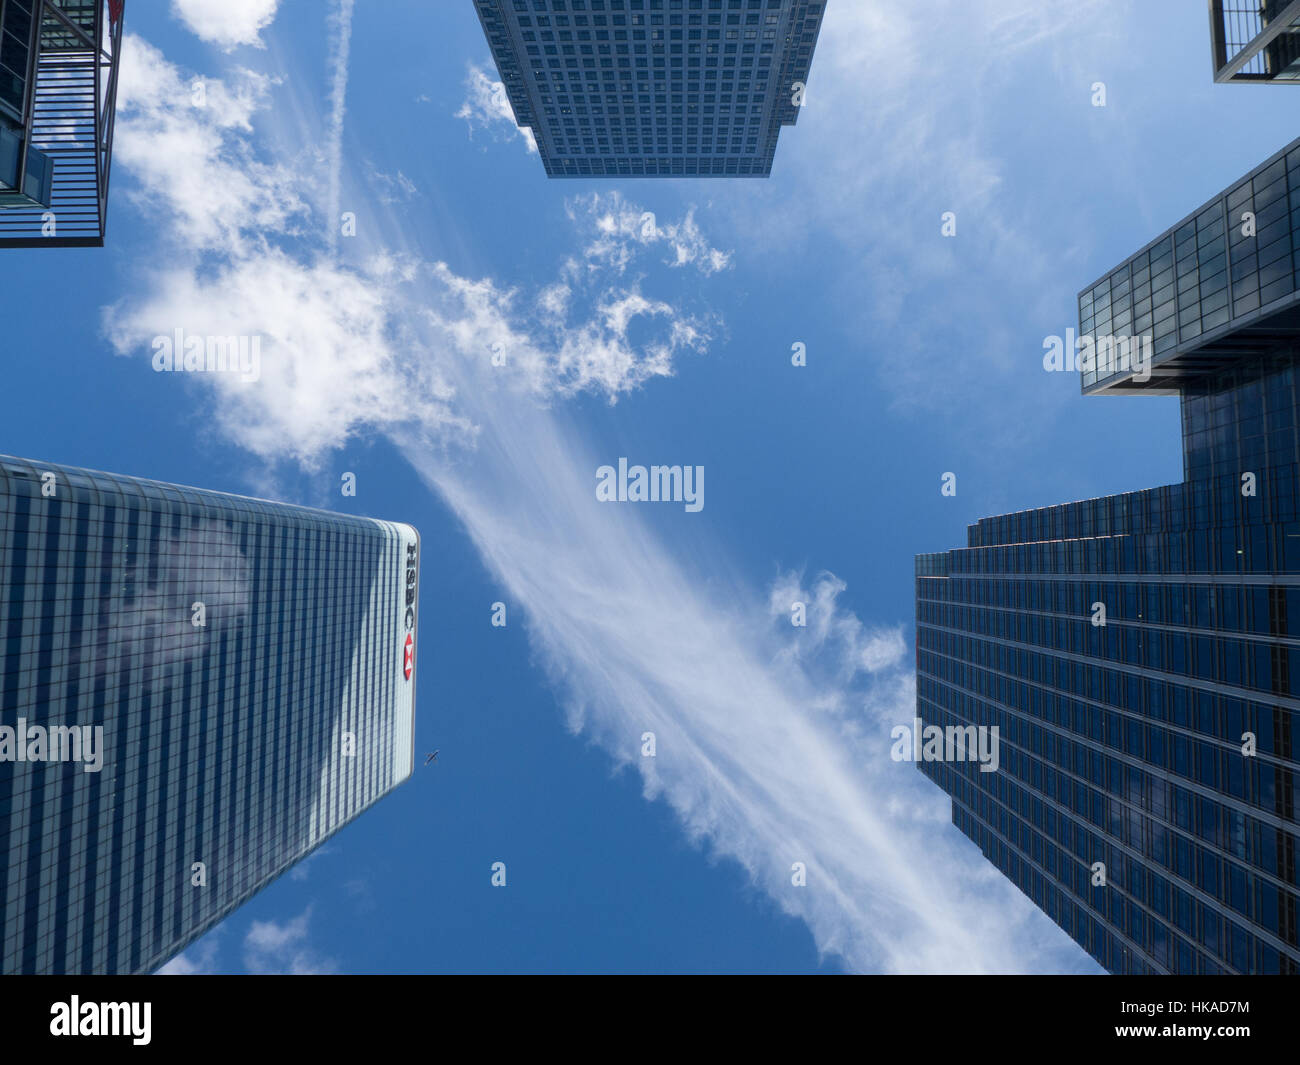 Skyscrapers at Canary Wharf - Stock Image